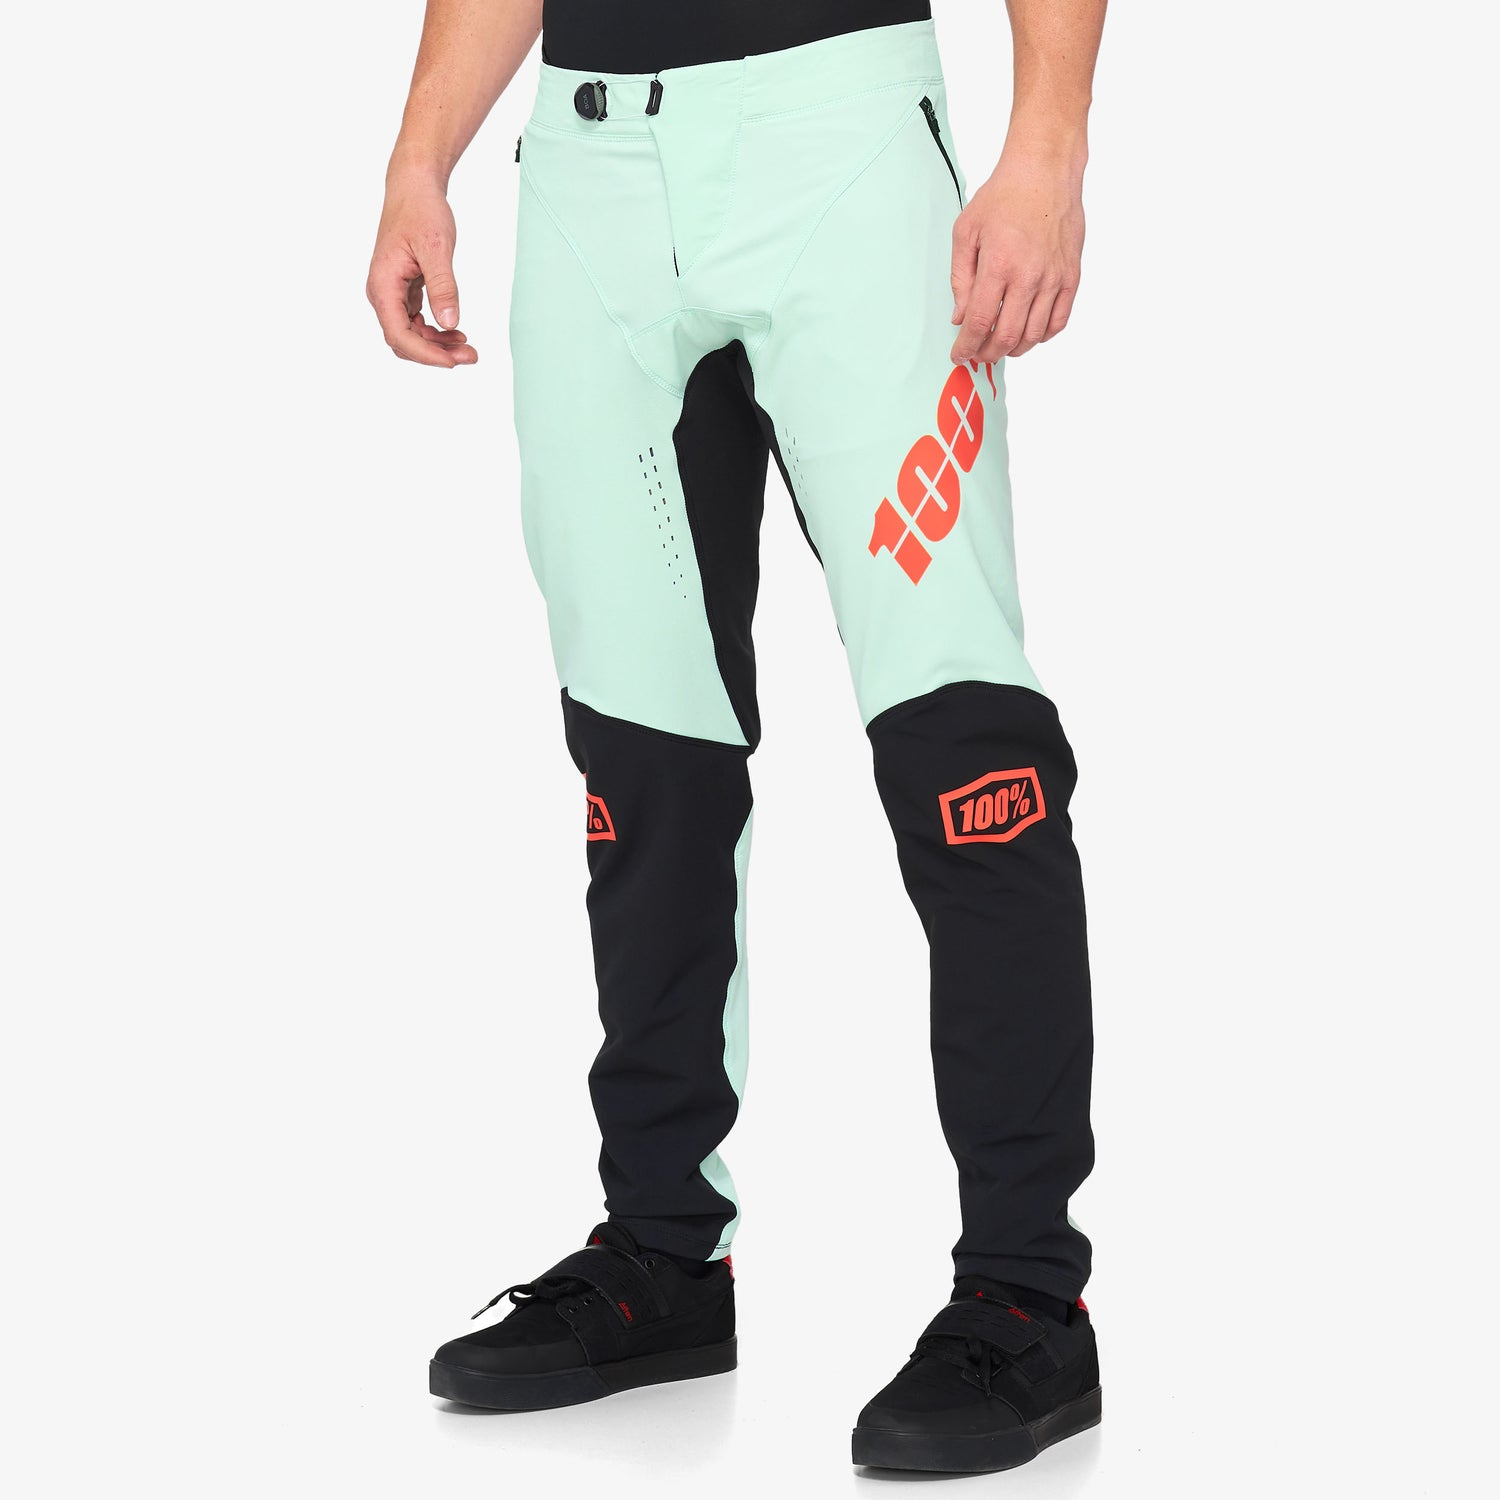 R-CORE X Pants Foam/Black